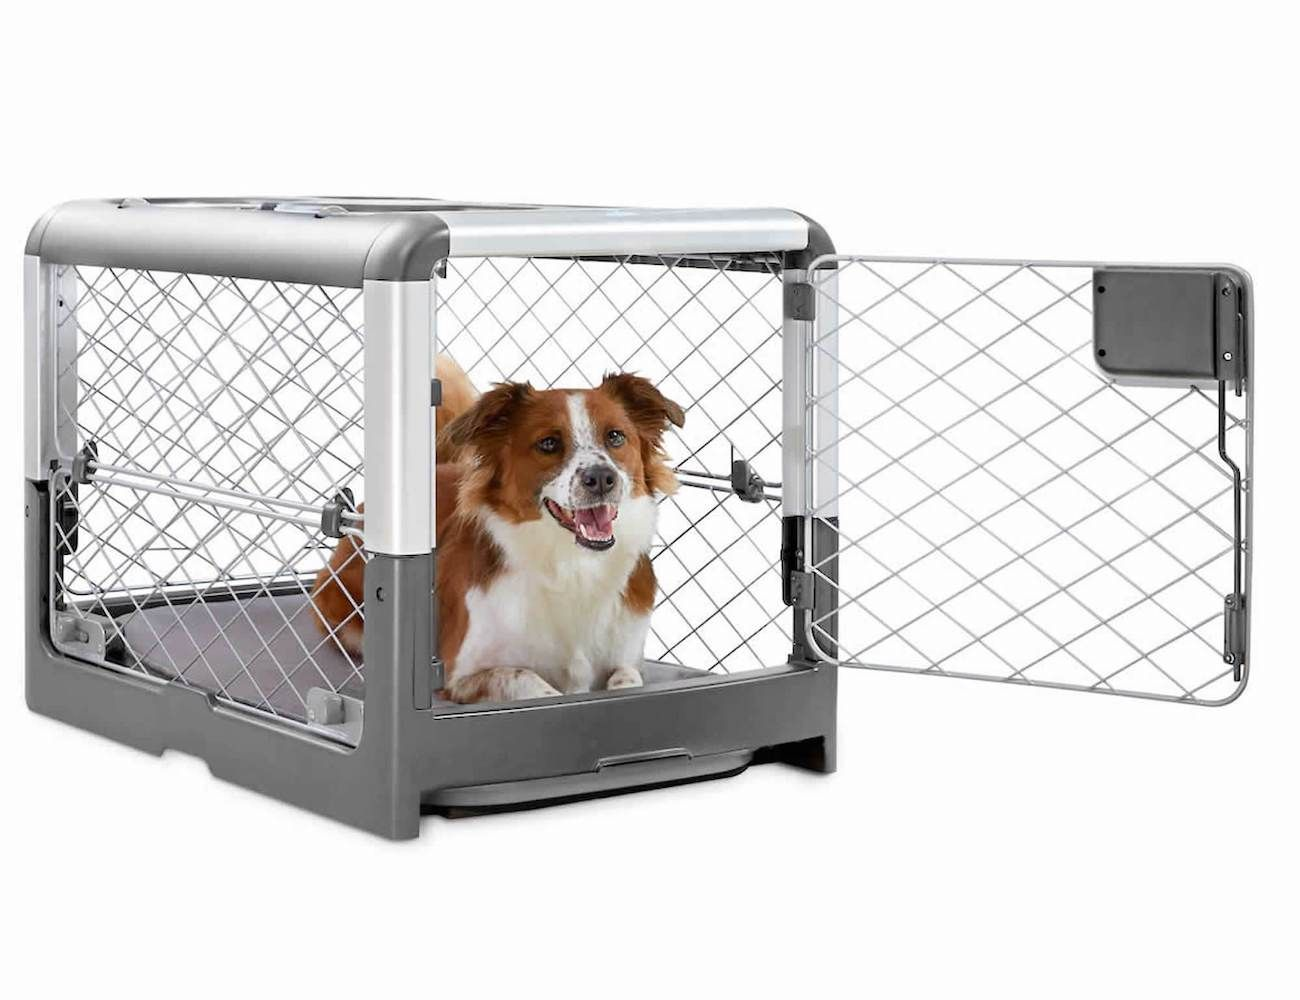 Diggs Revol Collapsible Dog Crate Collapsible Dog Crate Dog